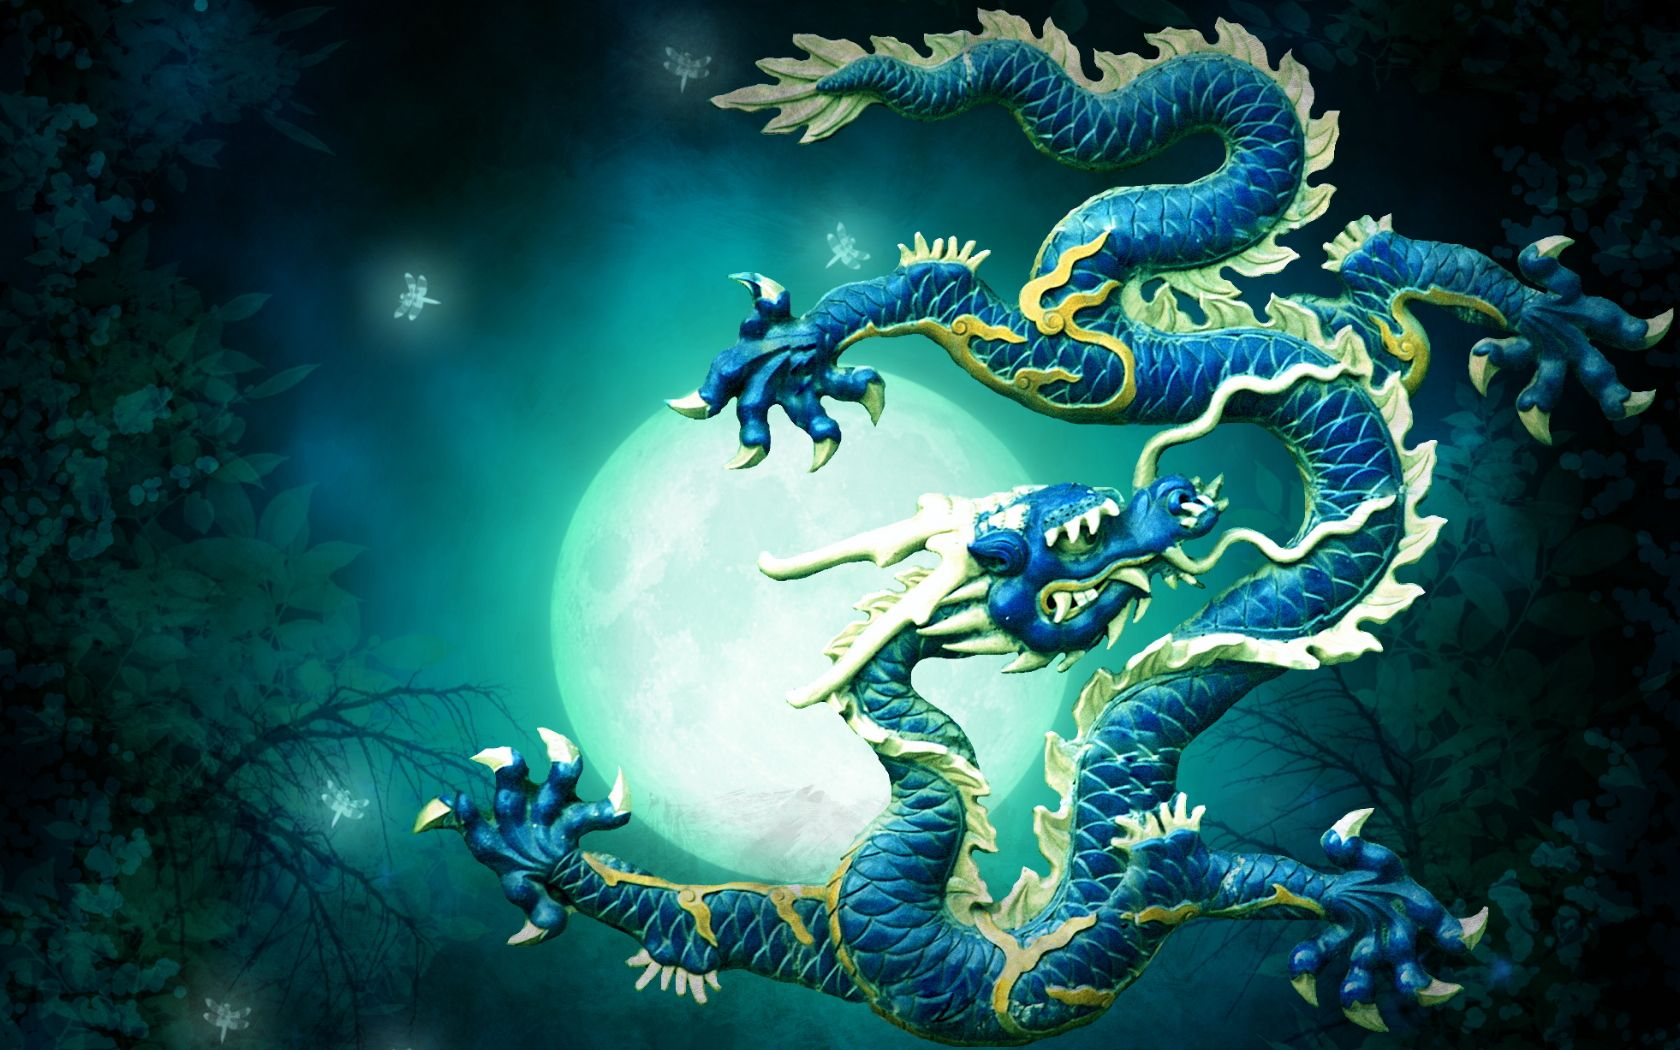 Blue Chinese Dragon Wallpapers - Top